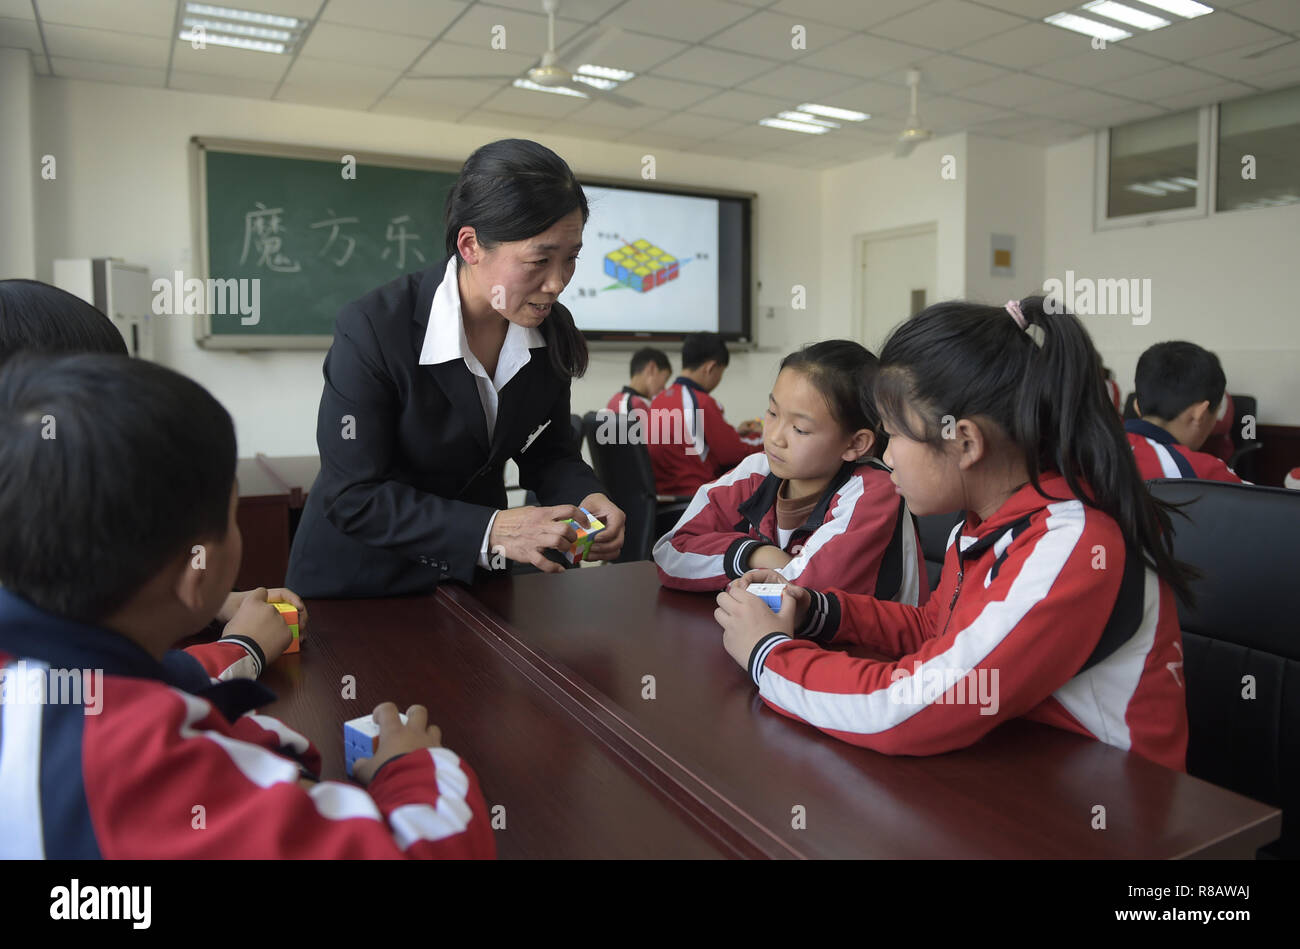 Gu'an, China's Hebei Province. 14th Dec, 2018. Students practise Rubik's Cubes under the guidance of a teacher at Nanzhaogezhuang primary school in Gu'an County, north China's Hebei Province, Dec. 14, 2018. Various extracurricular classes are provided in Nanzhaogezhuang primary school to enrich the school life of students. Credit: Lu Peng/Xinhua/Alamy Live News - Stock Image